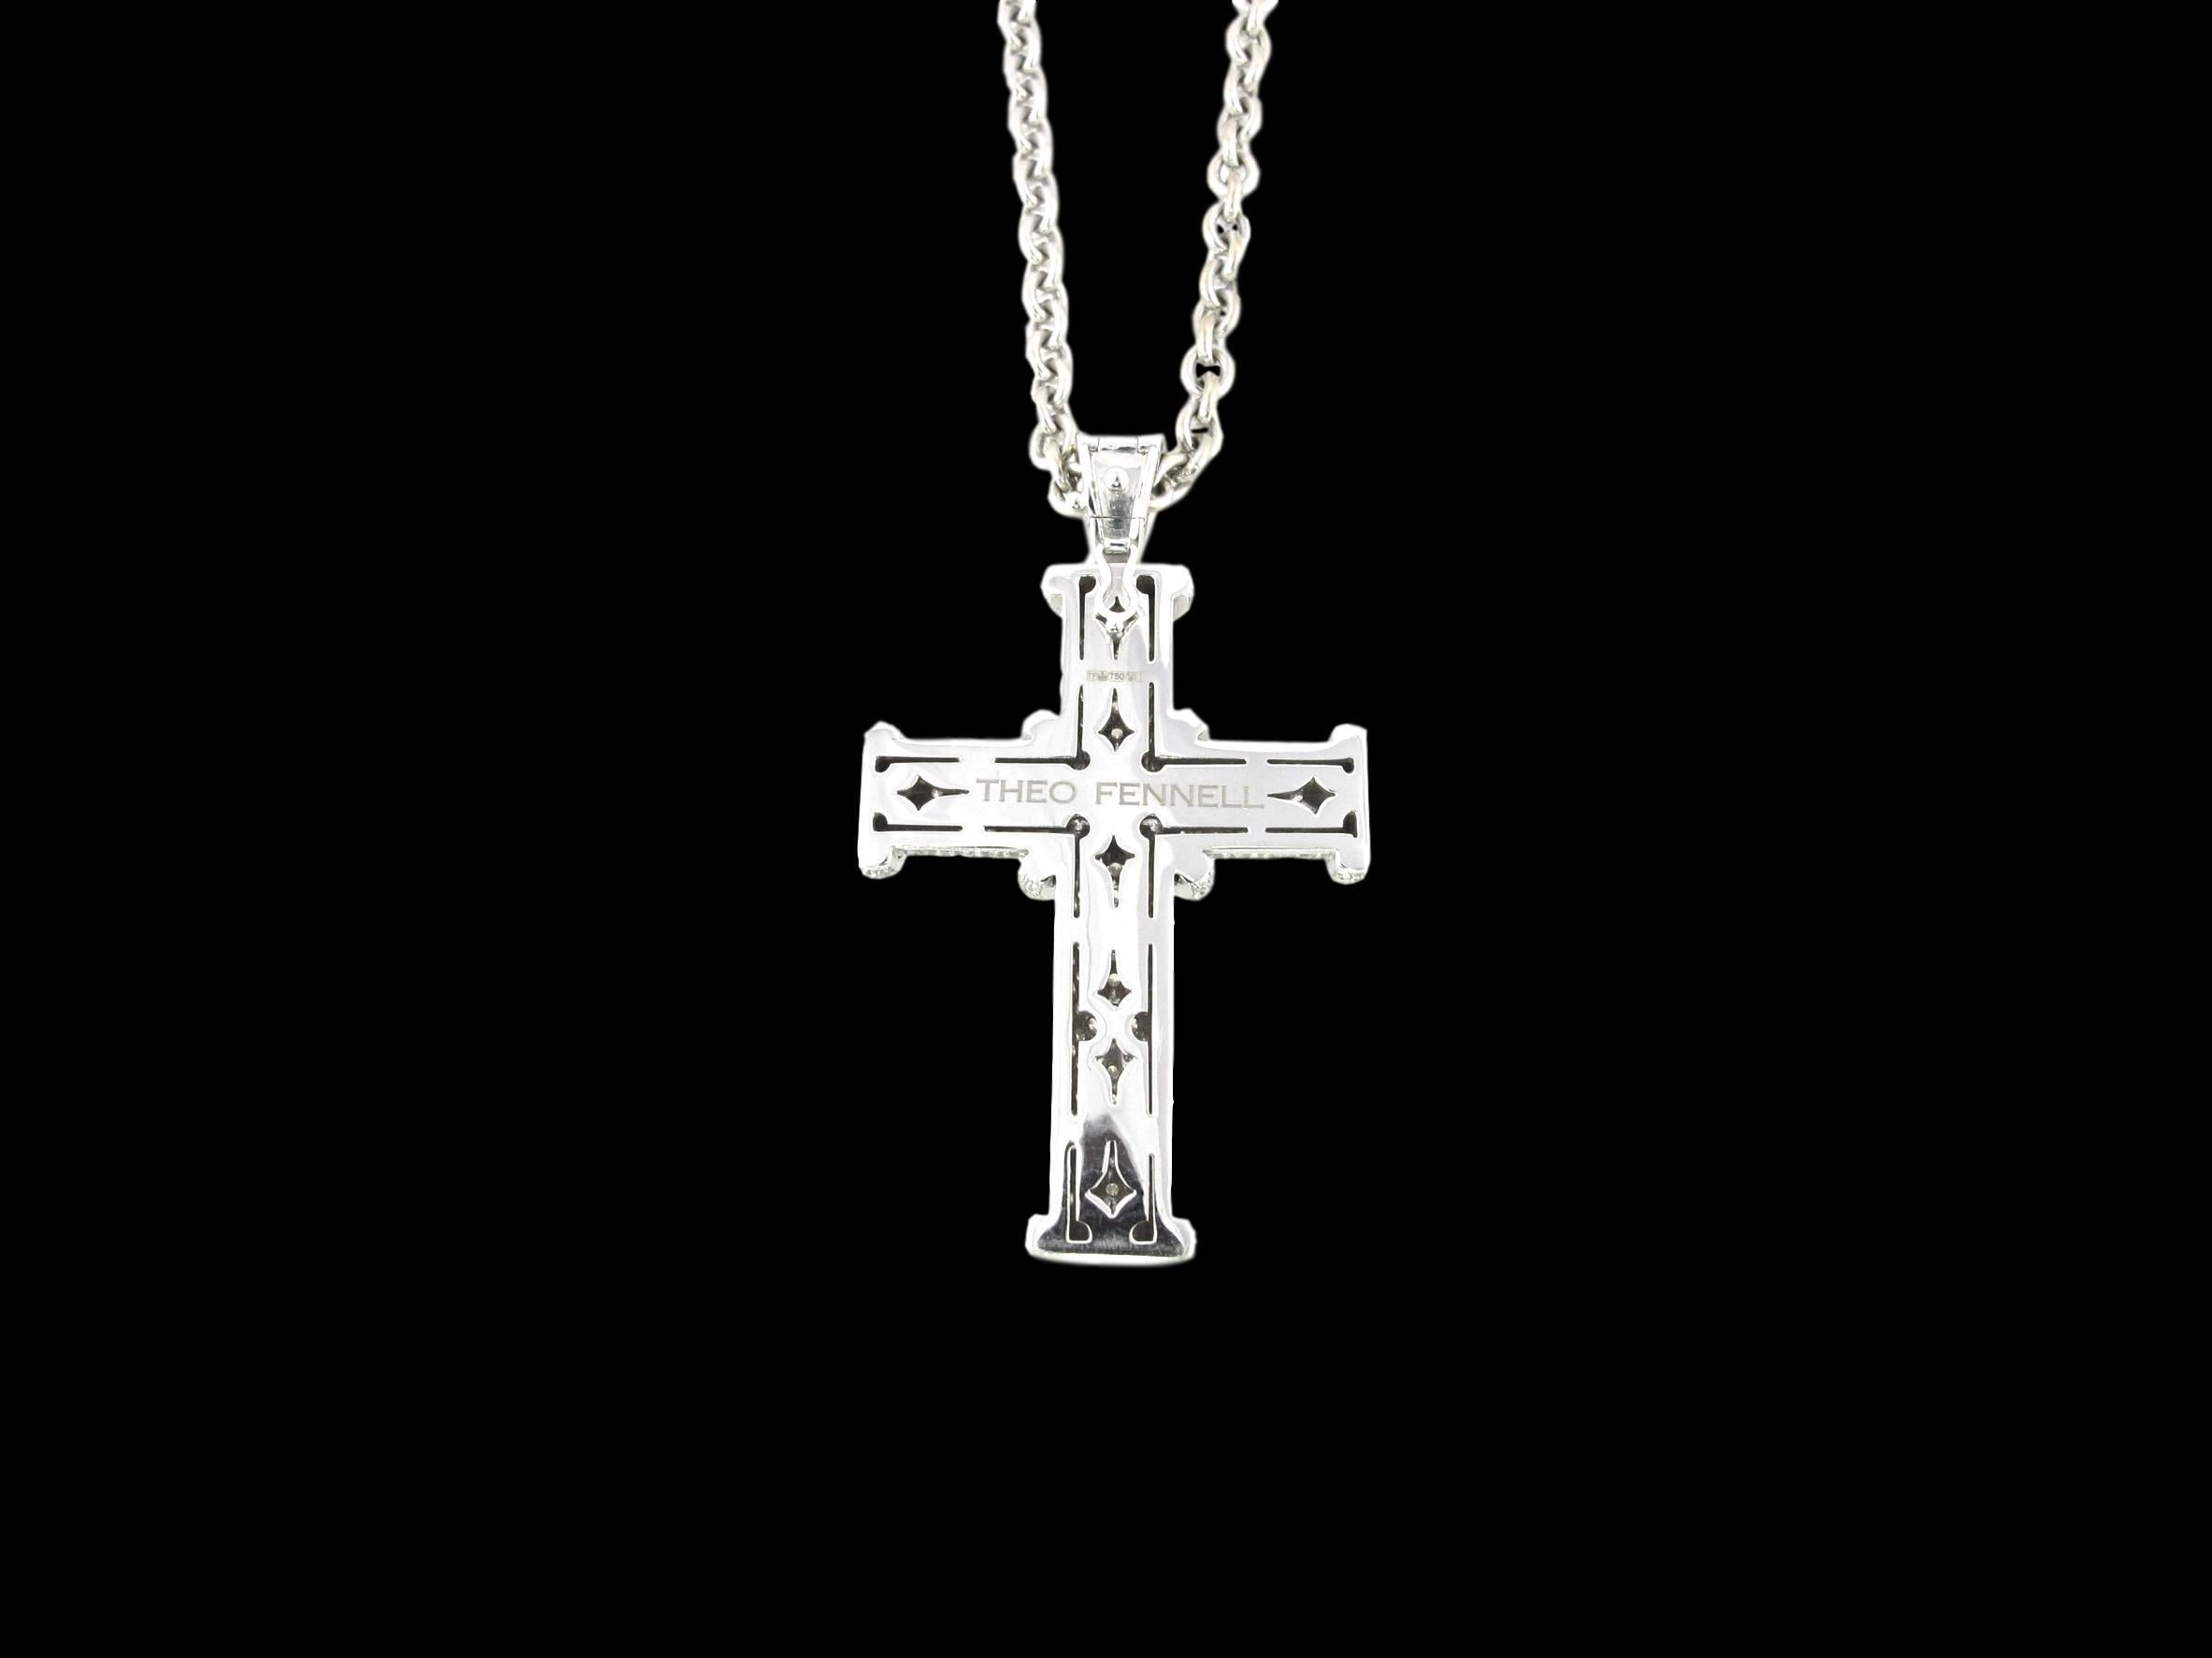 b0a28b73a2a3f0 Diamond White Gold Large Theo Fennell Cross on Long Chain Pendant For Sale  at 1stdibs